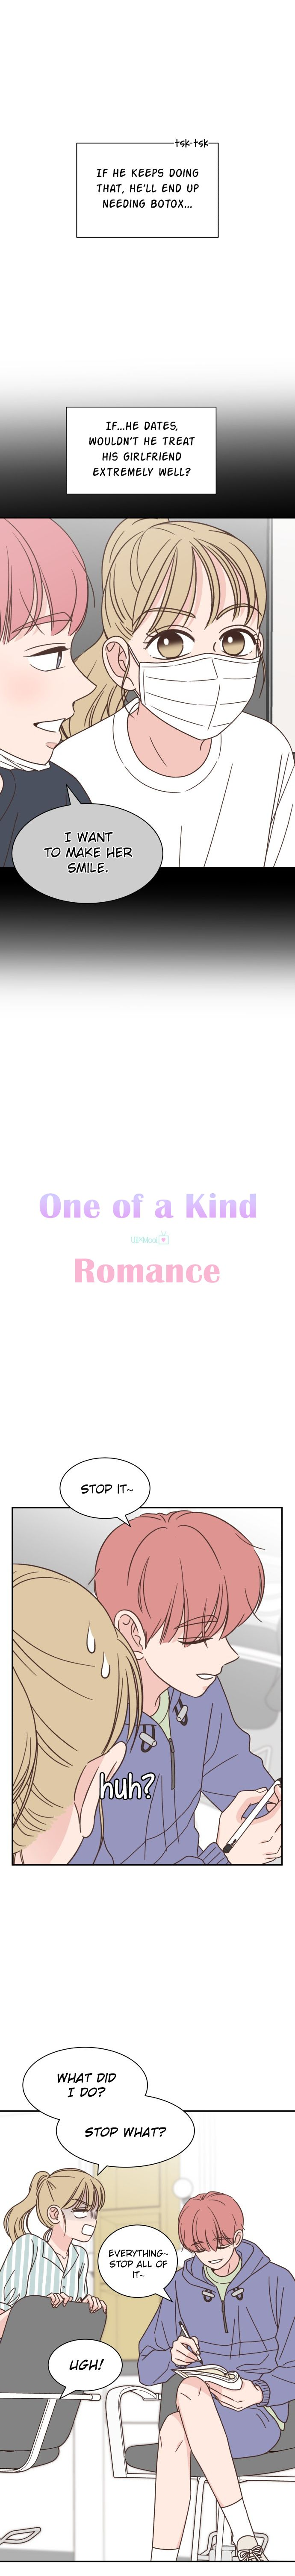 One Of A Kind Romance - chapter 115 - #3